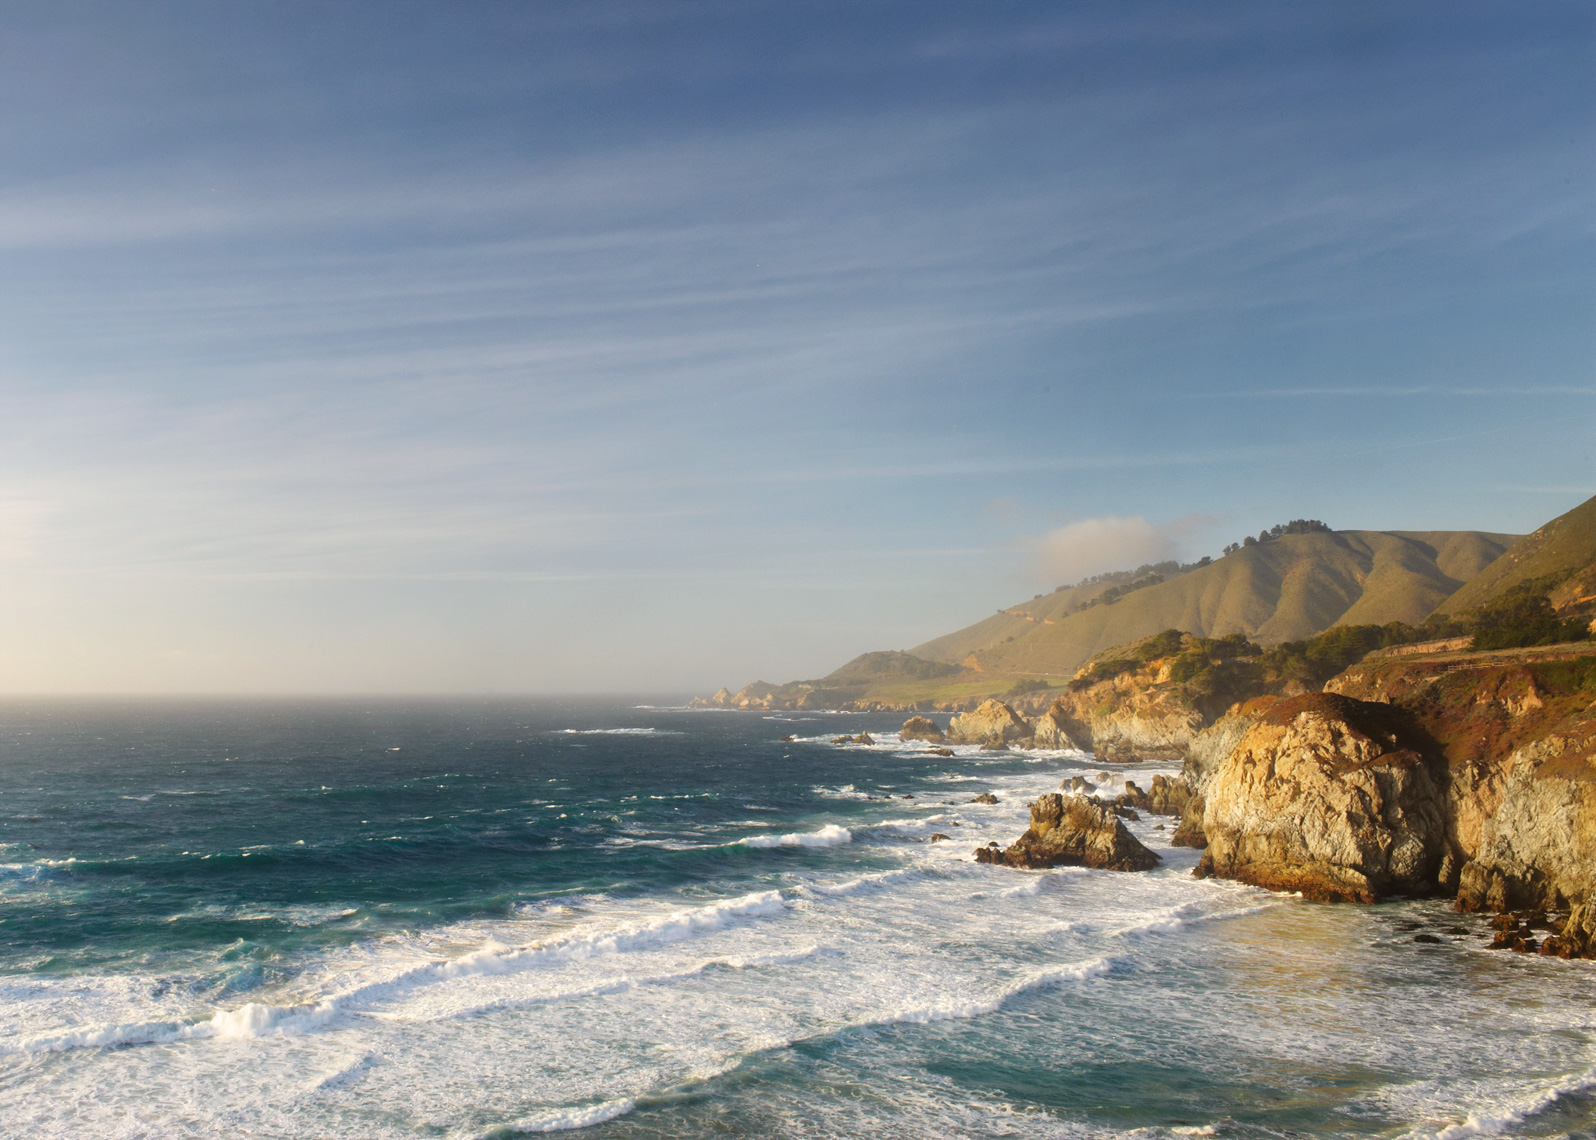 Monterey coast surf and rocks landscape photography